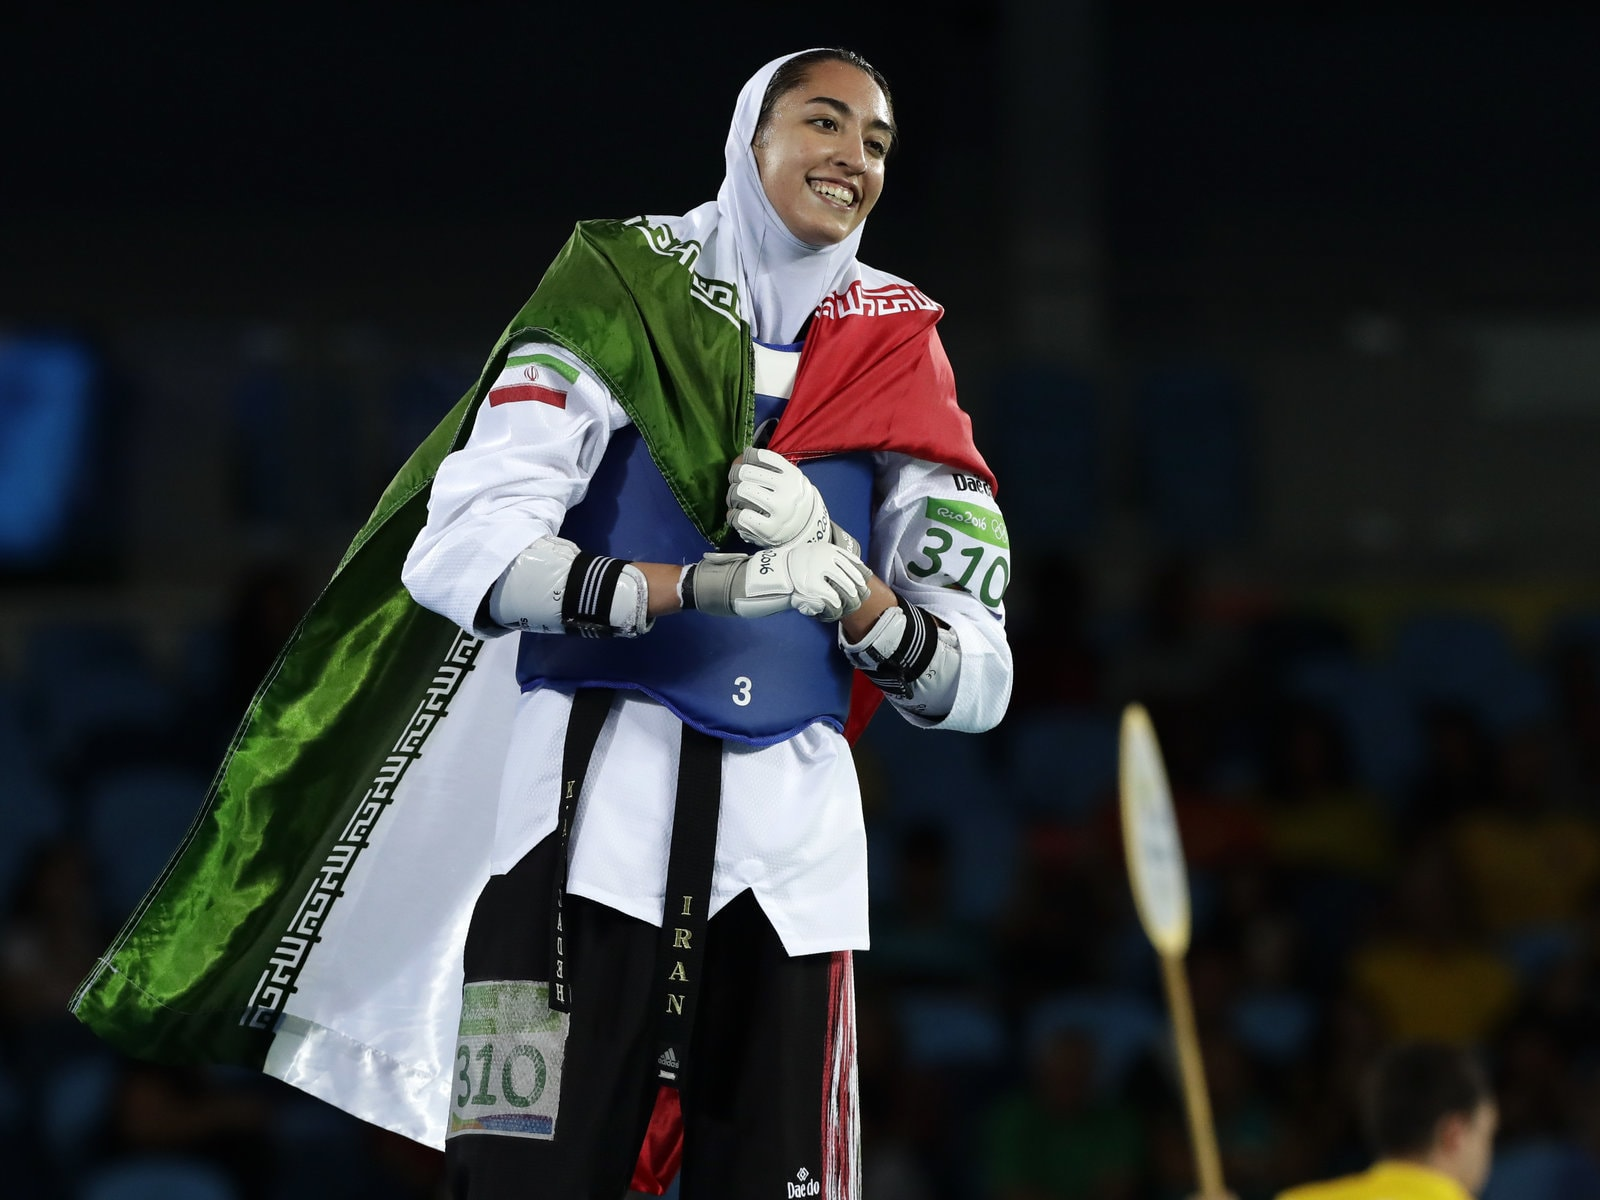 Kimia Alizadeh of Iran celebrates after winning a bronze medal in taekwondo at the 2016 Summer Olympics in Rio de Janeiro, Brazil.